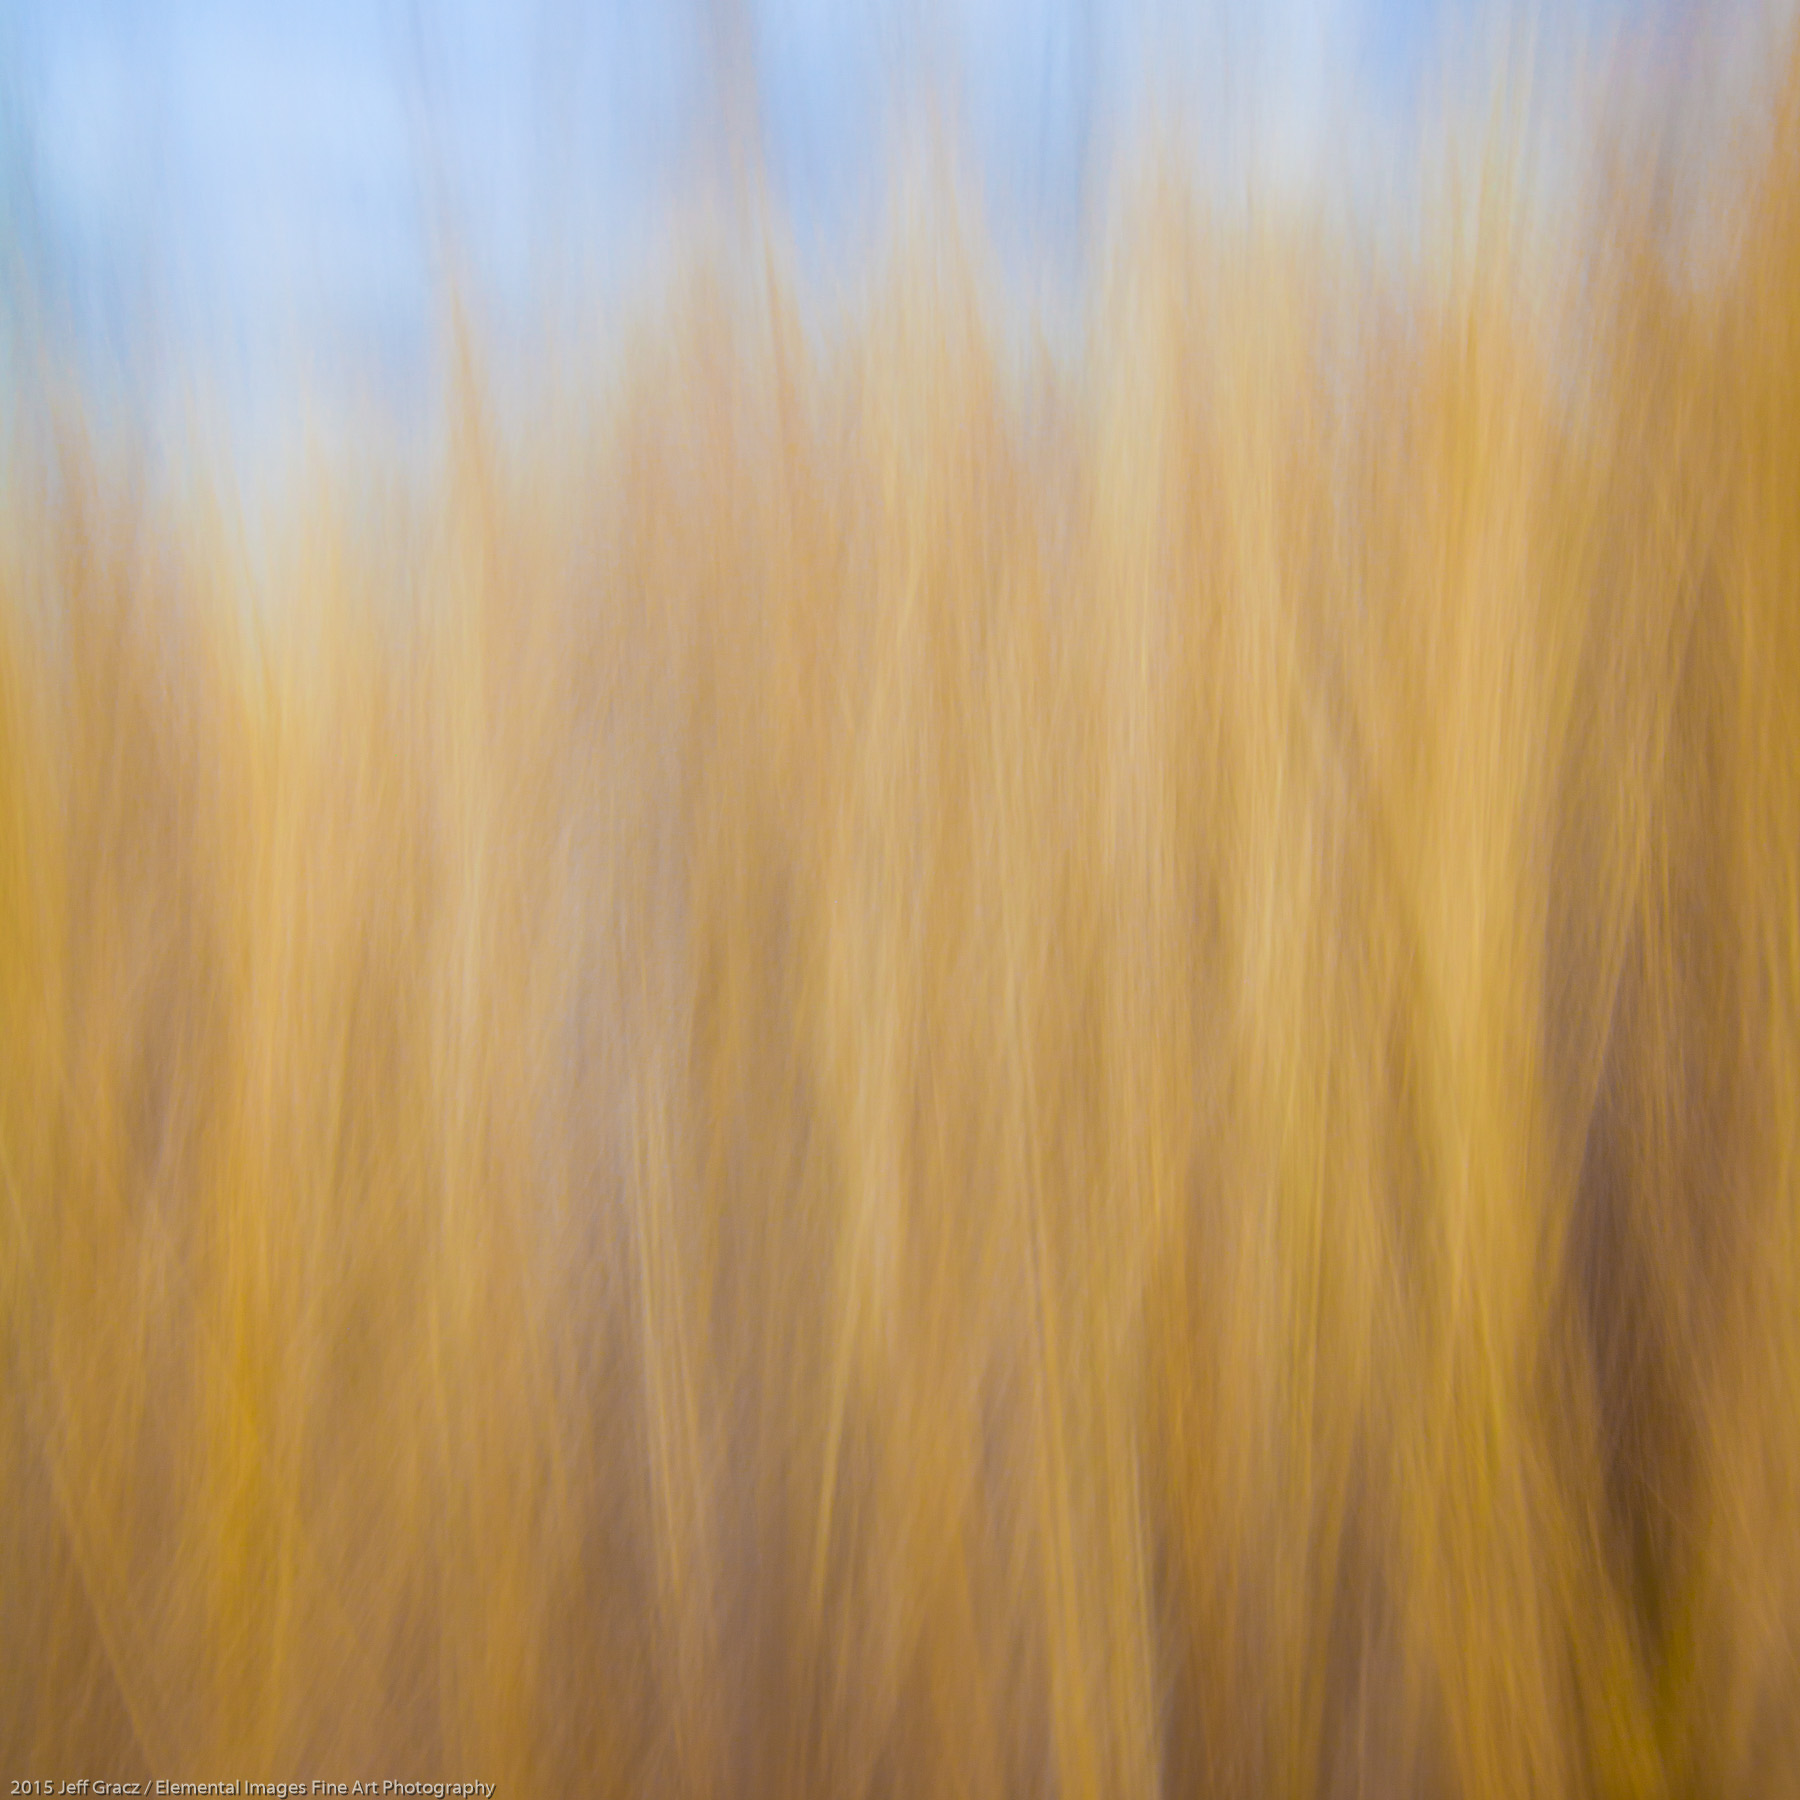 Grasses CXXXVI | Long Beach | WA | USA - © 2015 Jeff Gracz / Elemental Images Fine Art Photography - All Rights Reserved Worldwide